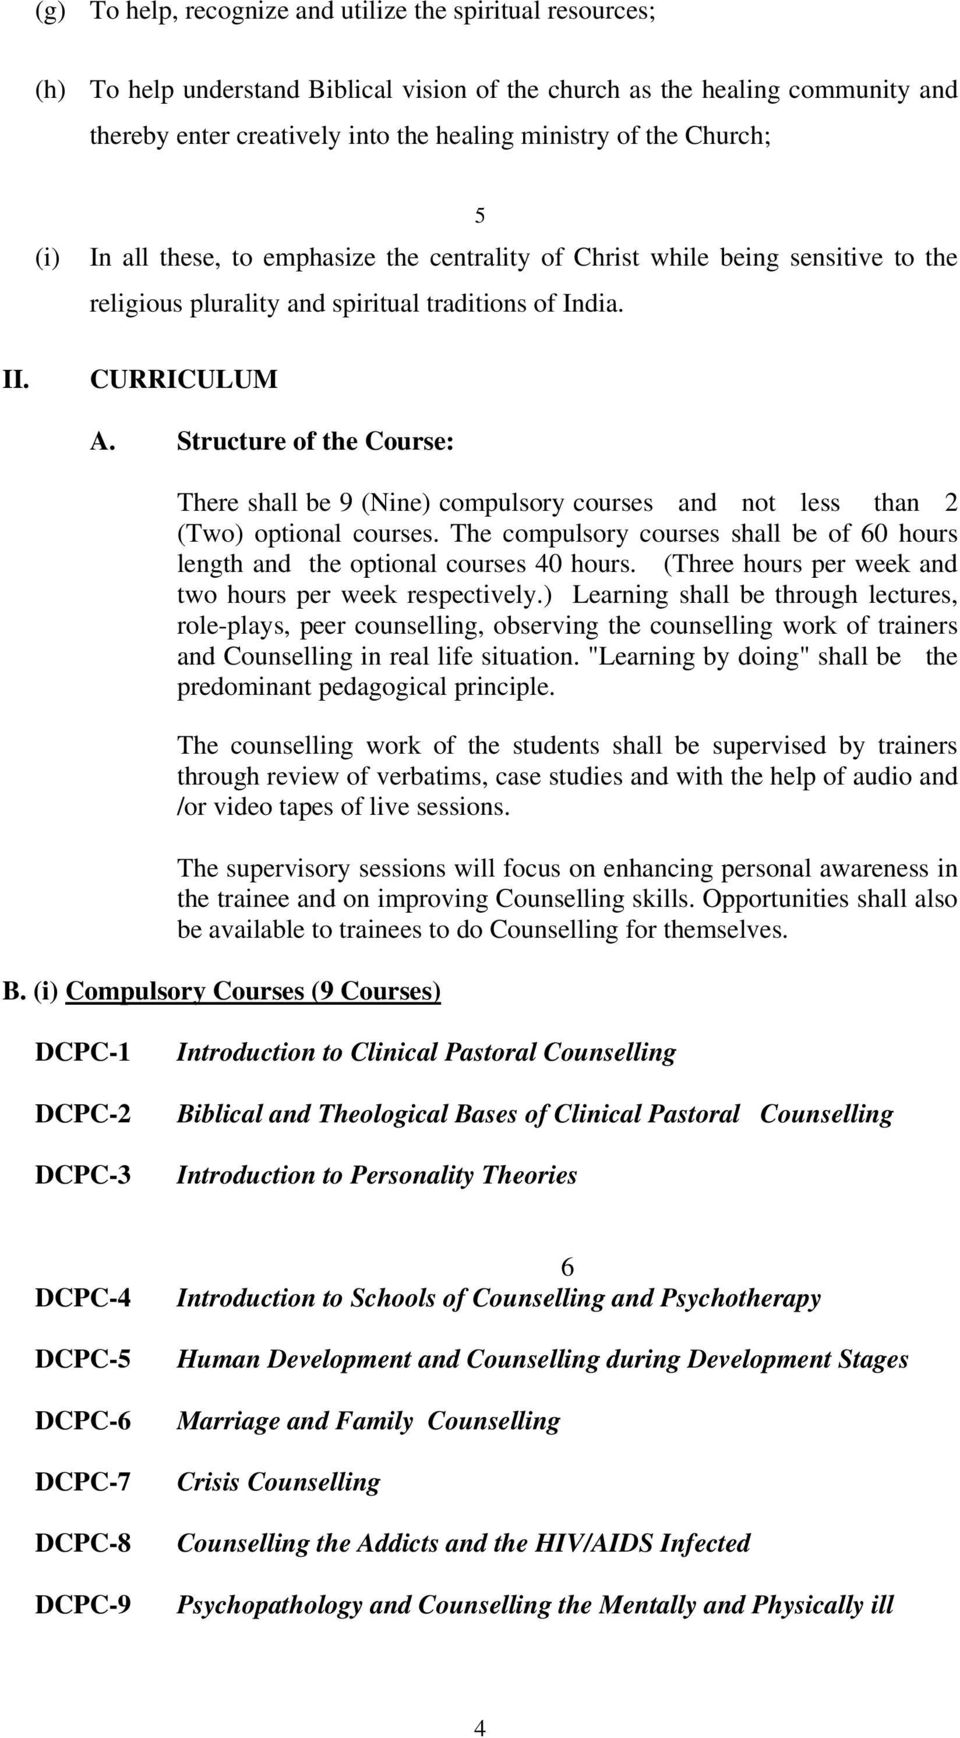 Structure of the Course: There shall be 9 (Nine) compulsory courses and not less than 2 (Two) optional courses. The compulsory courses shall be of 60 hours length and the optional courses 40 hours.